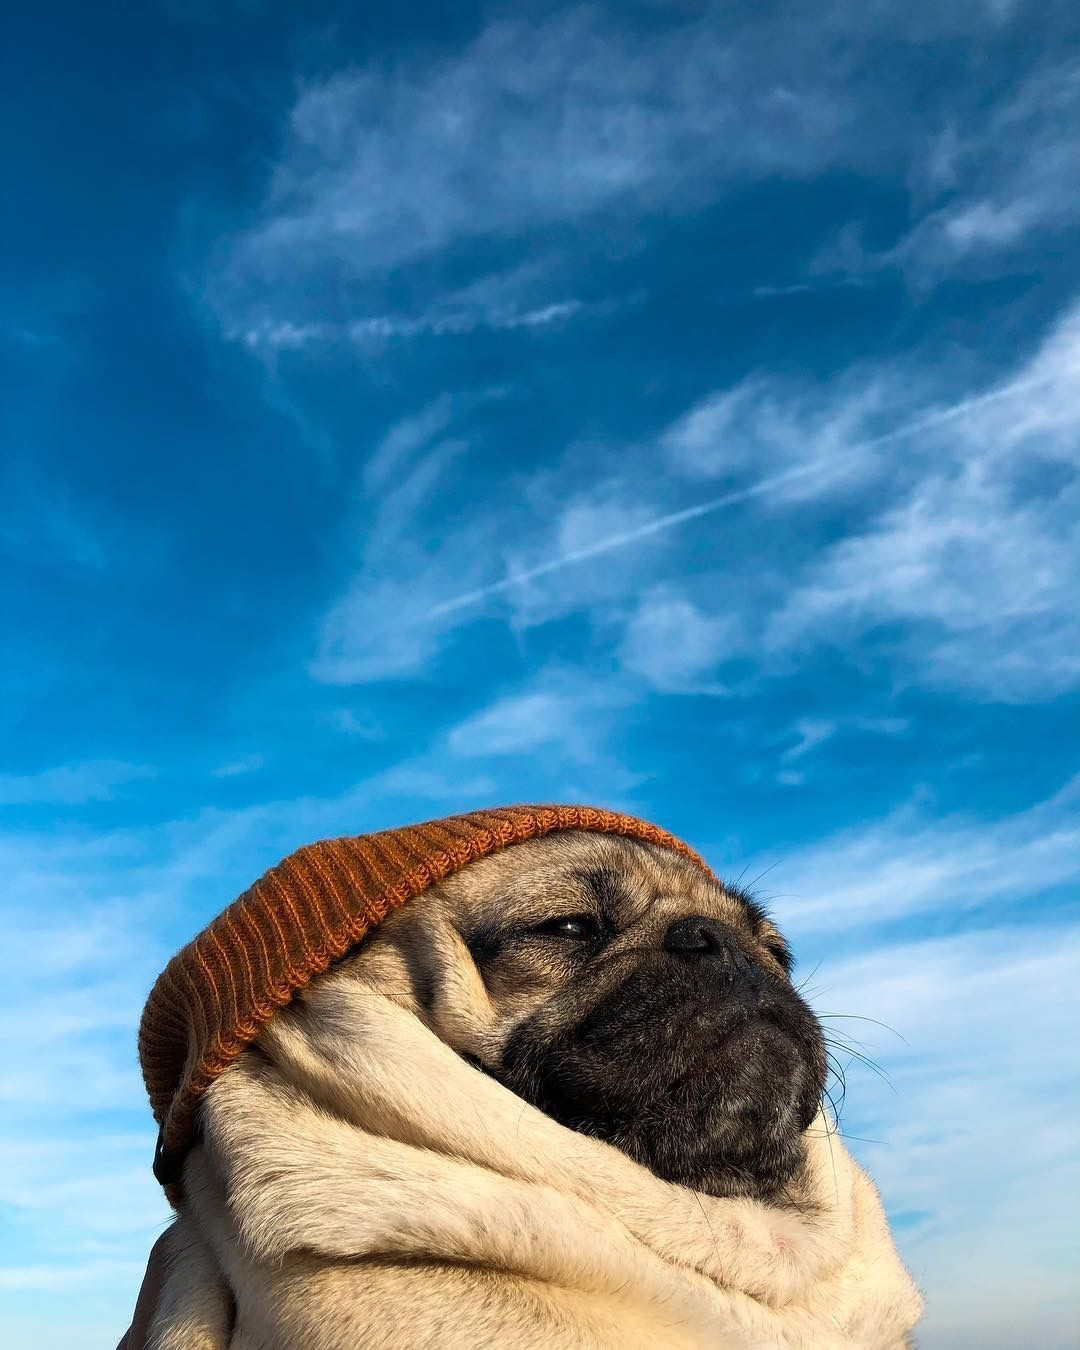 Have You Ever Seen A More Majestic Pug Via Aww On November 26